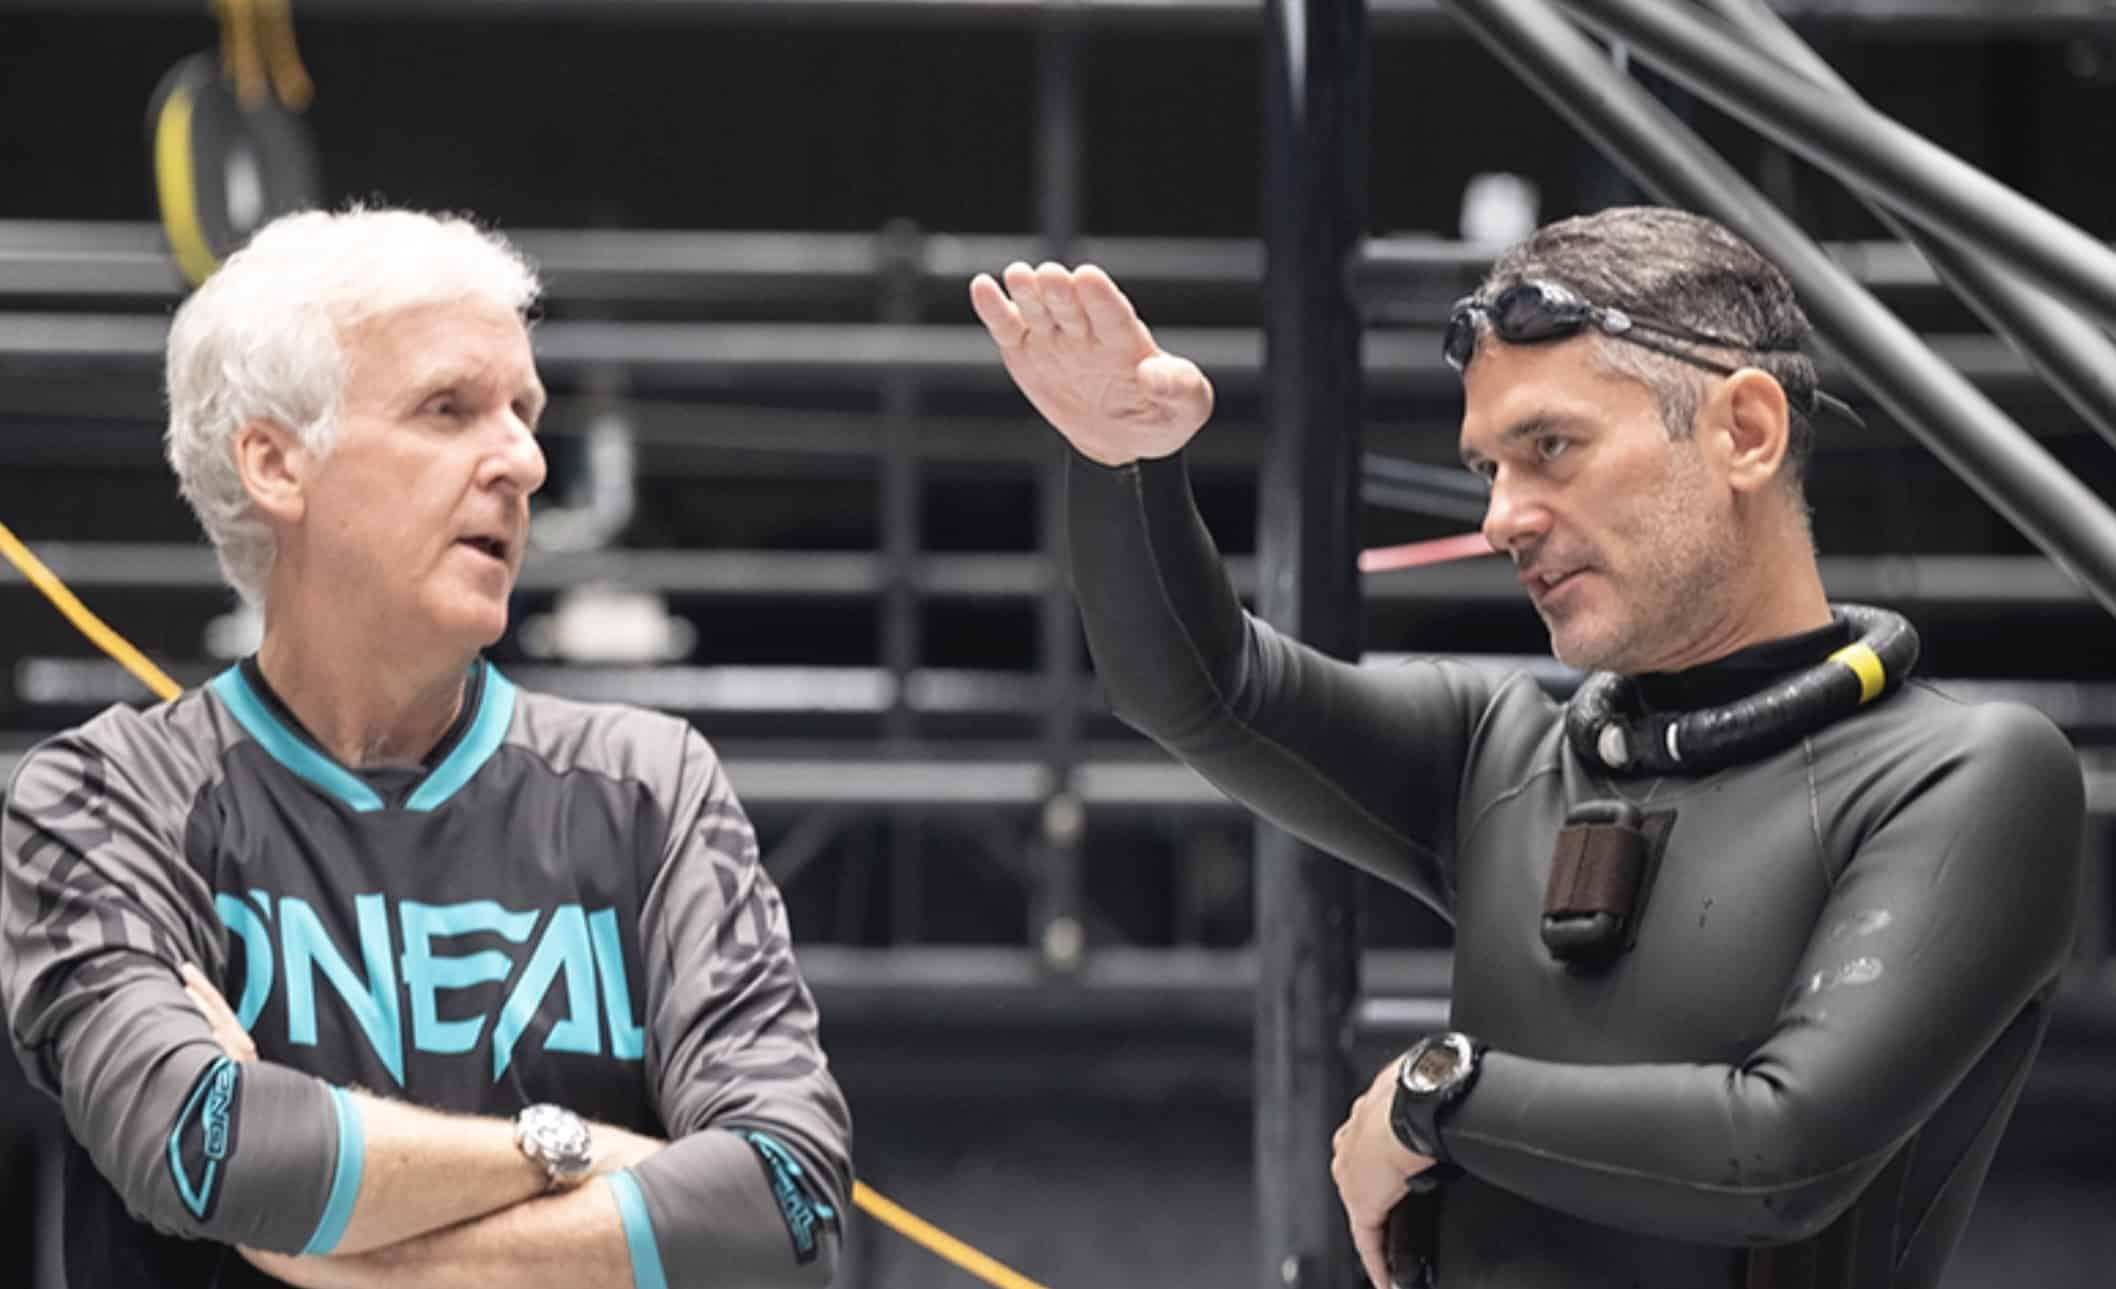 Director James Cameron and Kirk Krack on set during the filming the Avatar sequels.